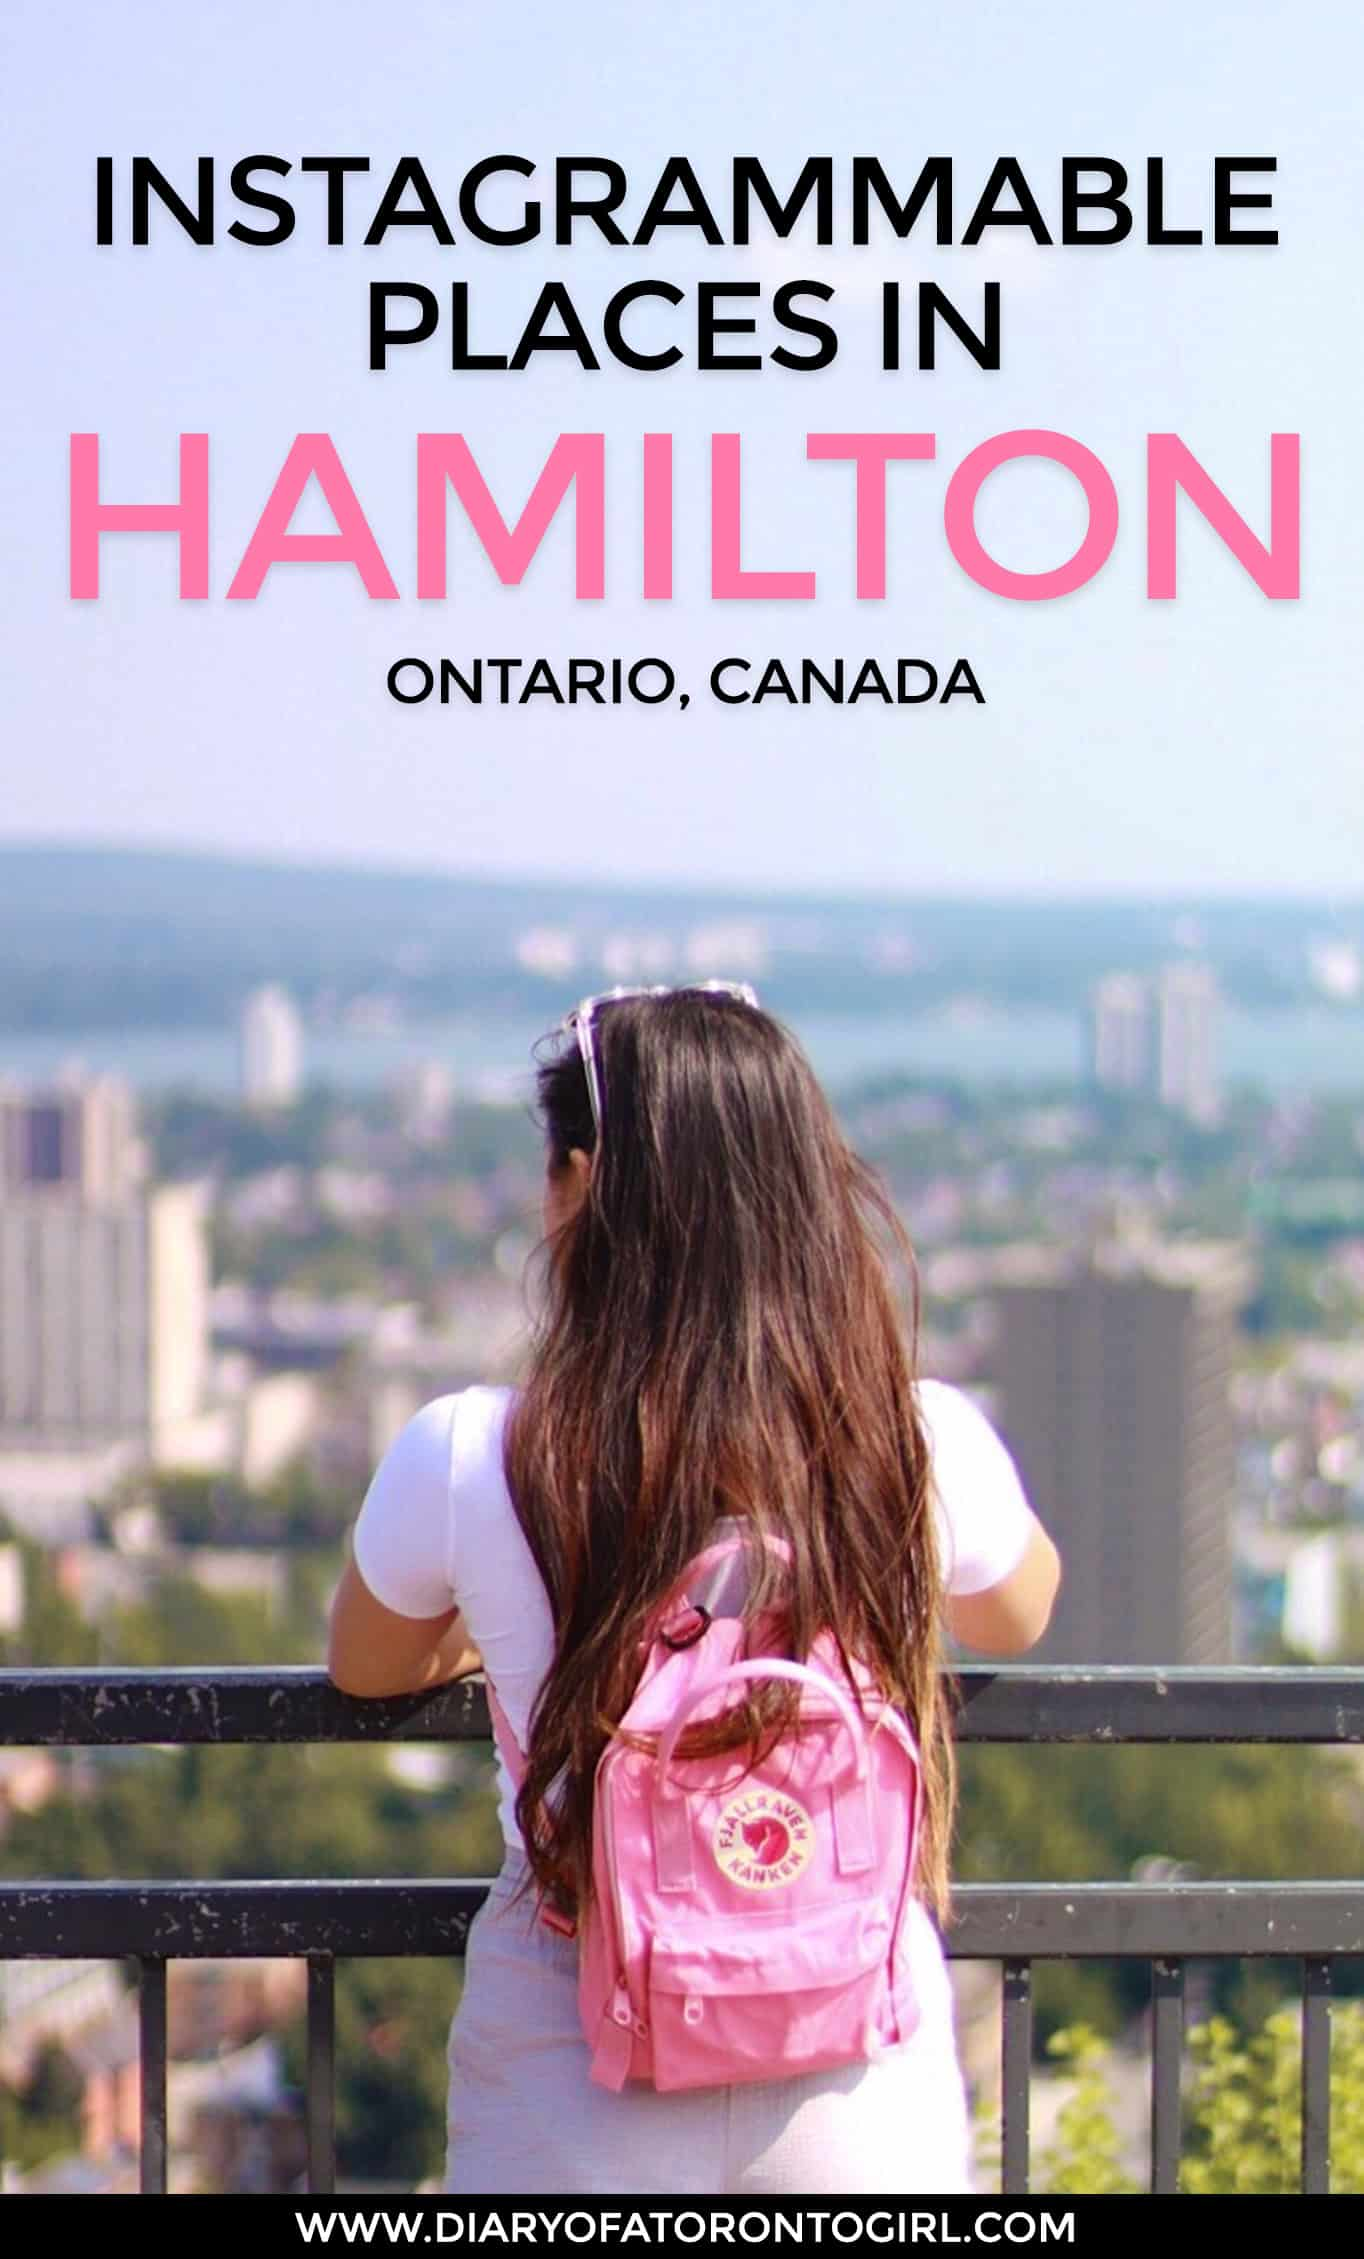 Planning a visit to the waterfall capital of the world here in Canada? Here's your ultimate guide to the prettiest and most Instagrammable spots to visit during your trip to Hamilton, Ontario!